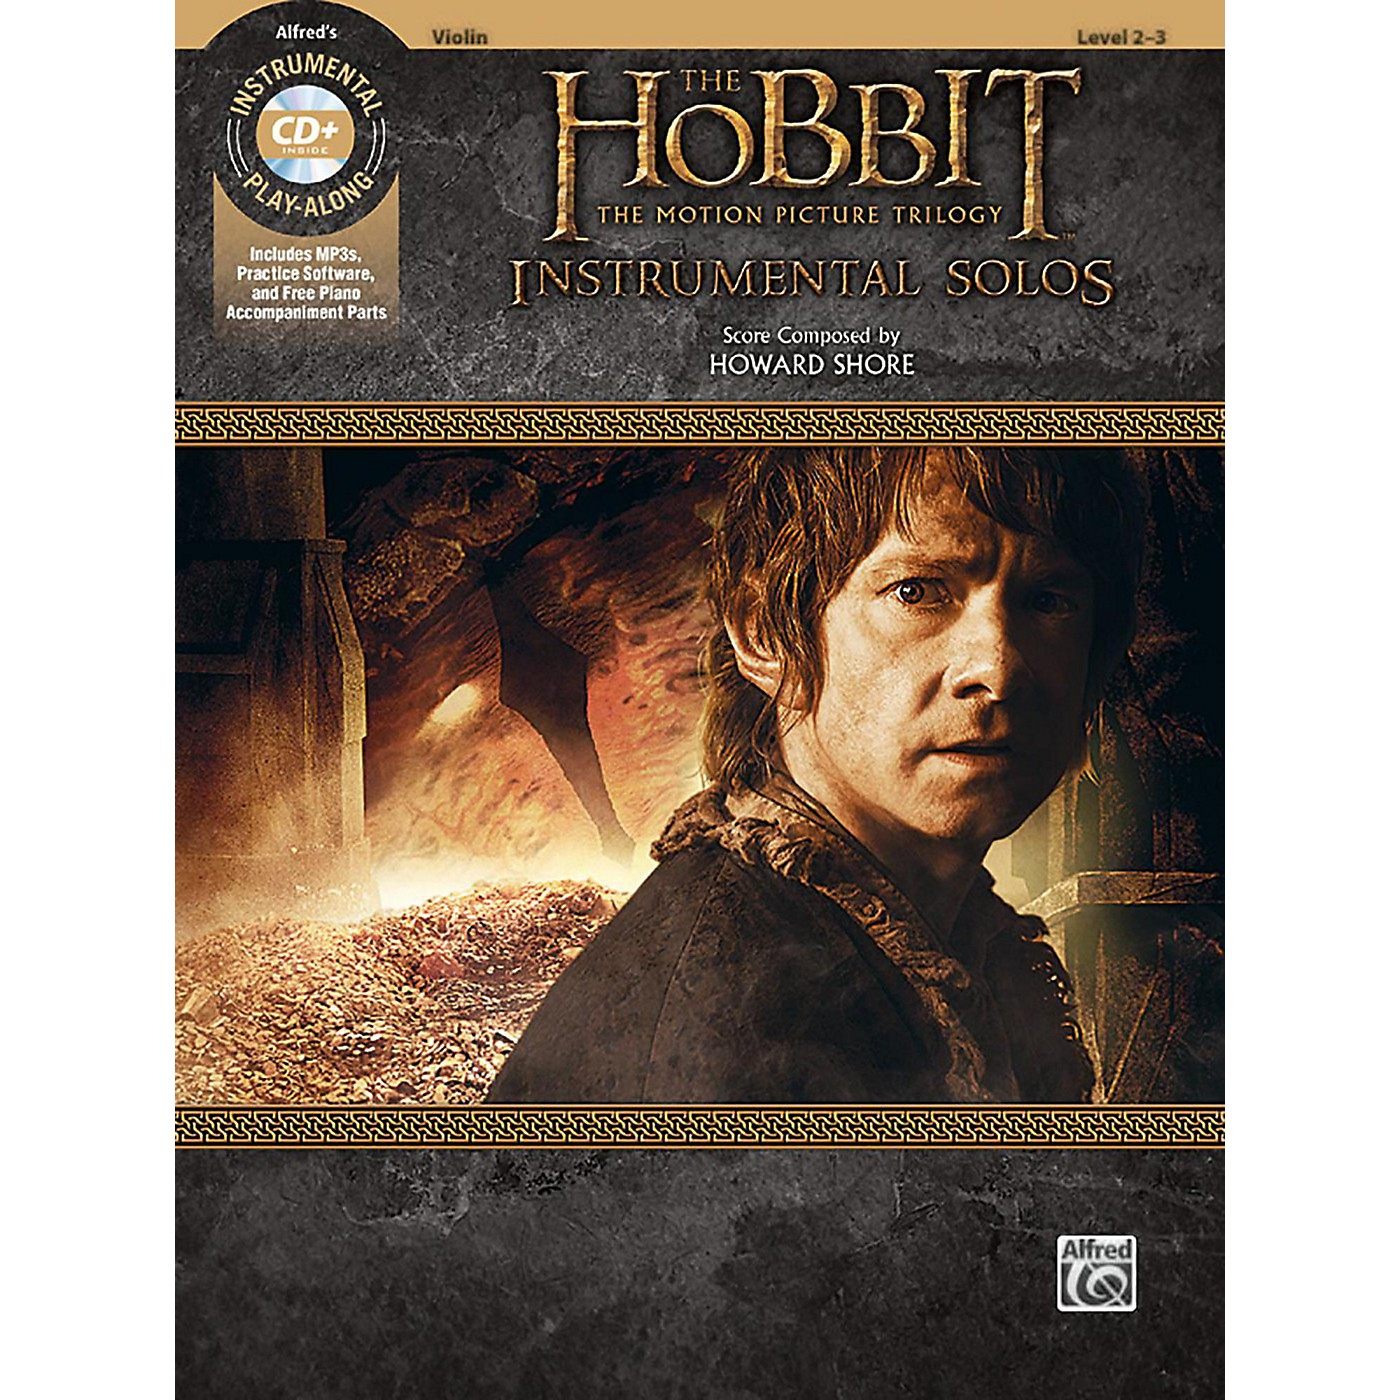 Alfred The Hobbit - The Motion Picture Trilogy Instrumental Solos for Strings Violin Book & CD Level 2-3 Songbook thumbnail